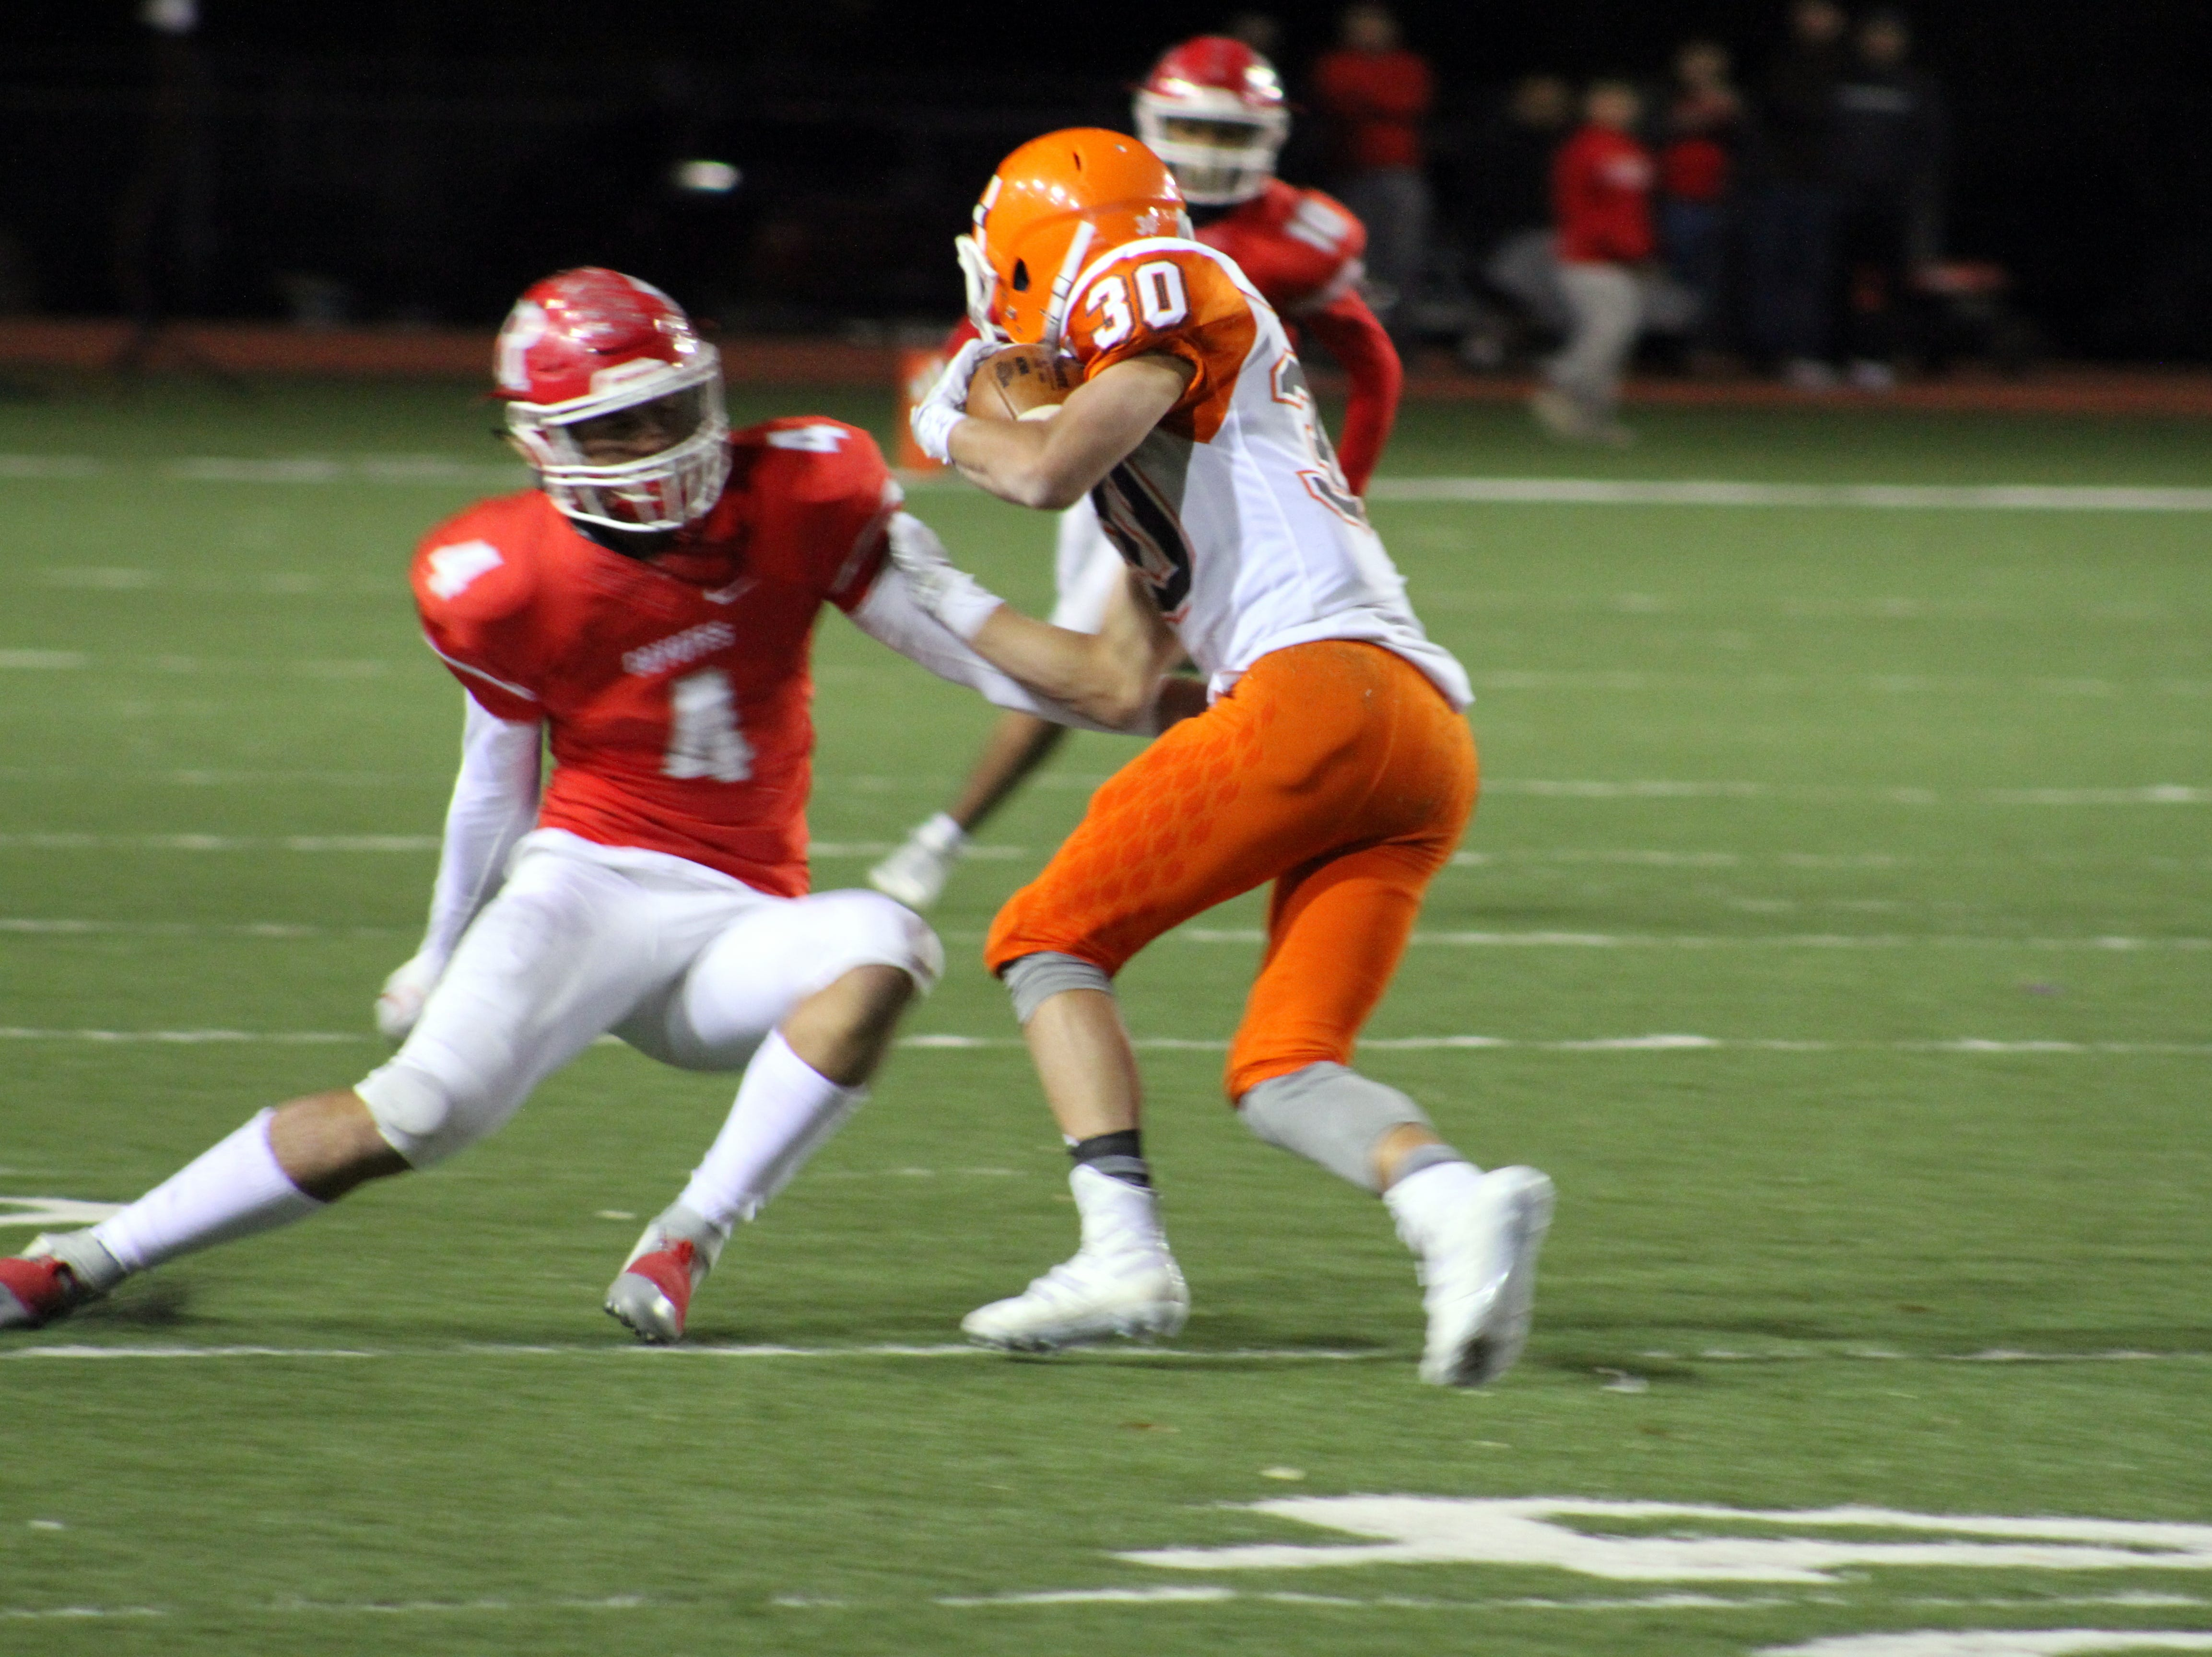 Artesia's Jagger Donaghe jukes Roswell's Dylan Tucker during Friday's Class 5A semifinal game. Donaghe scored four total touchdowns in the game.